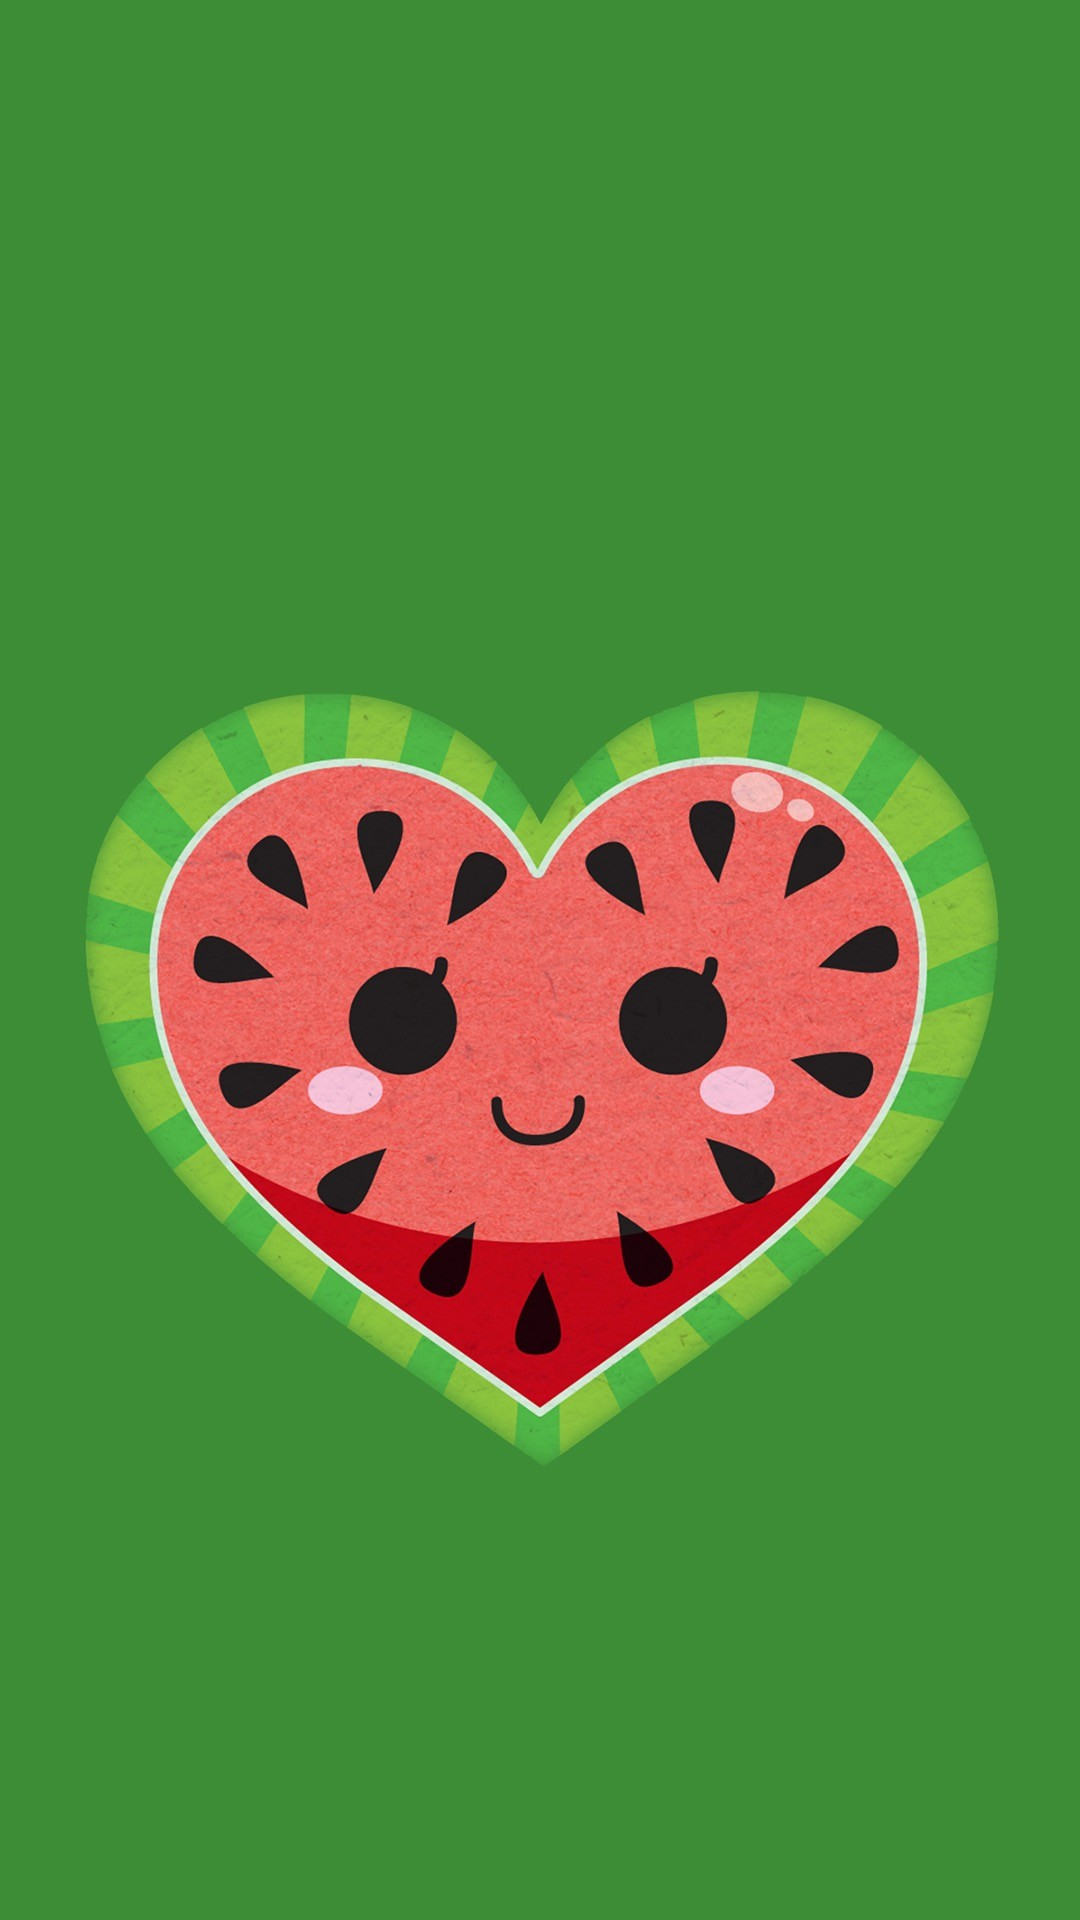 watermelon cute wallpapers melon iphone kawaii heart backgrounds background summer girly deviantart water everything phone loves